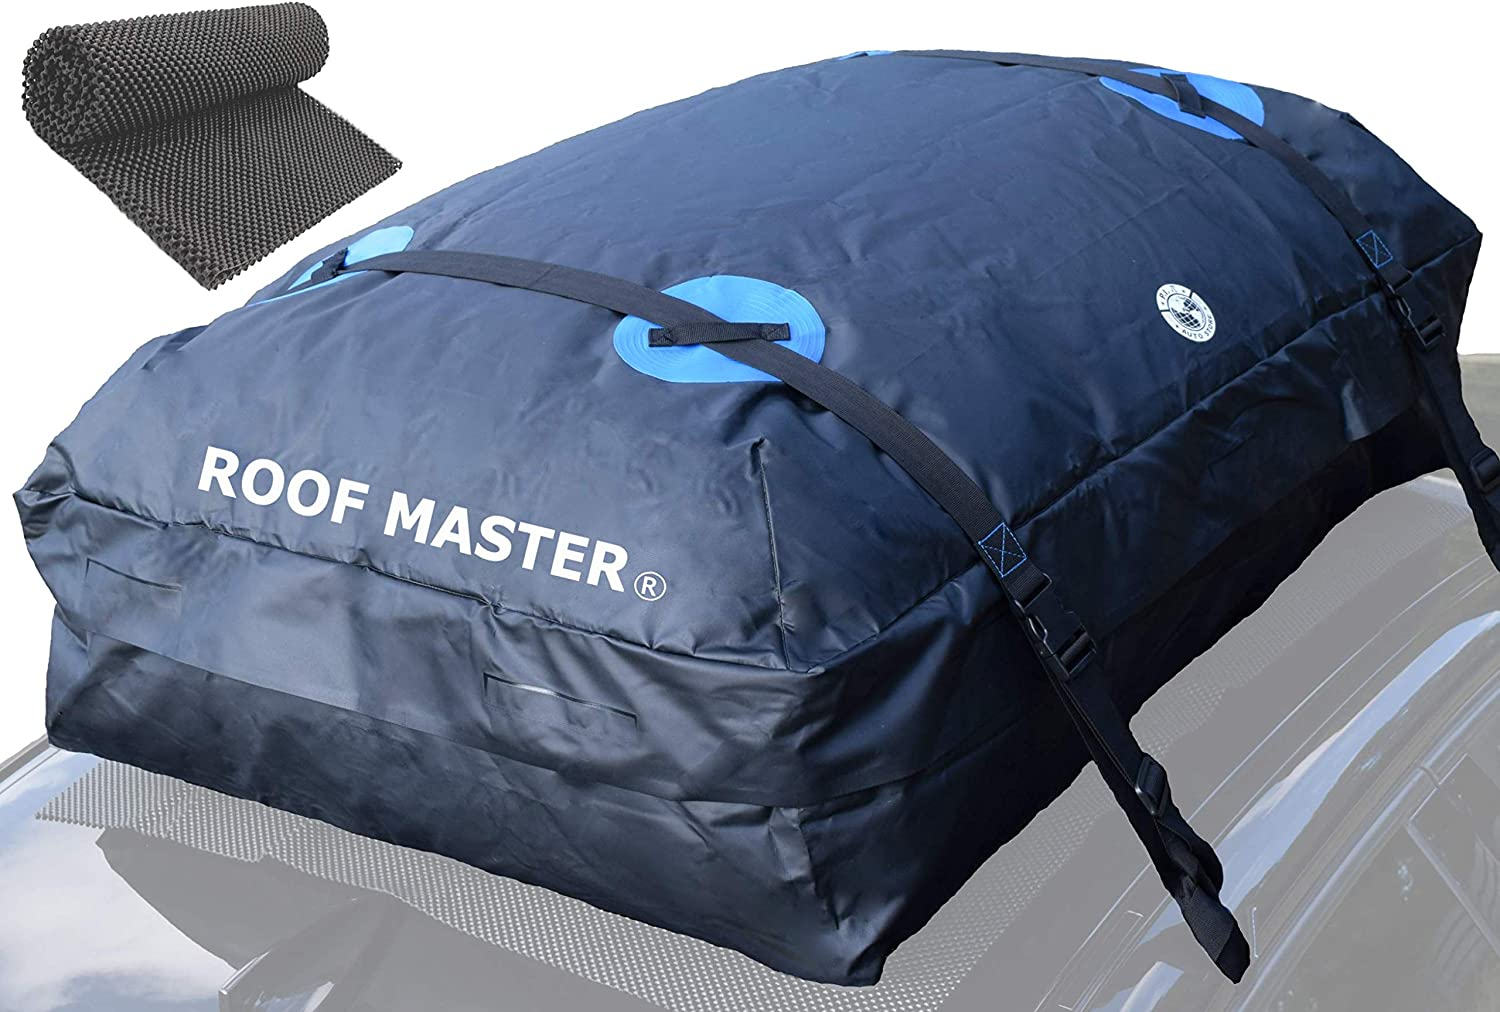 P.I. AUTO STORE ROOFMASTER Rooftop Cargo Carrier for All Cars & Automobiles with or Without Roof Rack. Unique Waterproof Design - 16 Cu ft Roof Bag. Includes Roof Top Mat